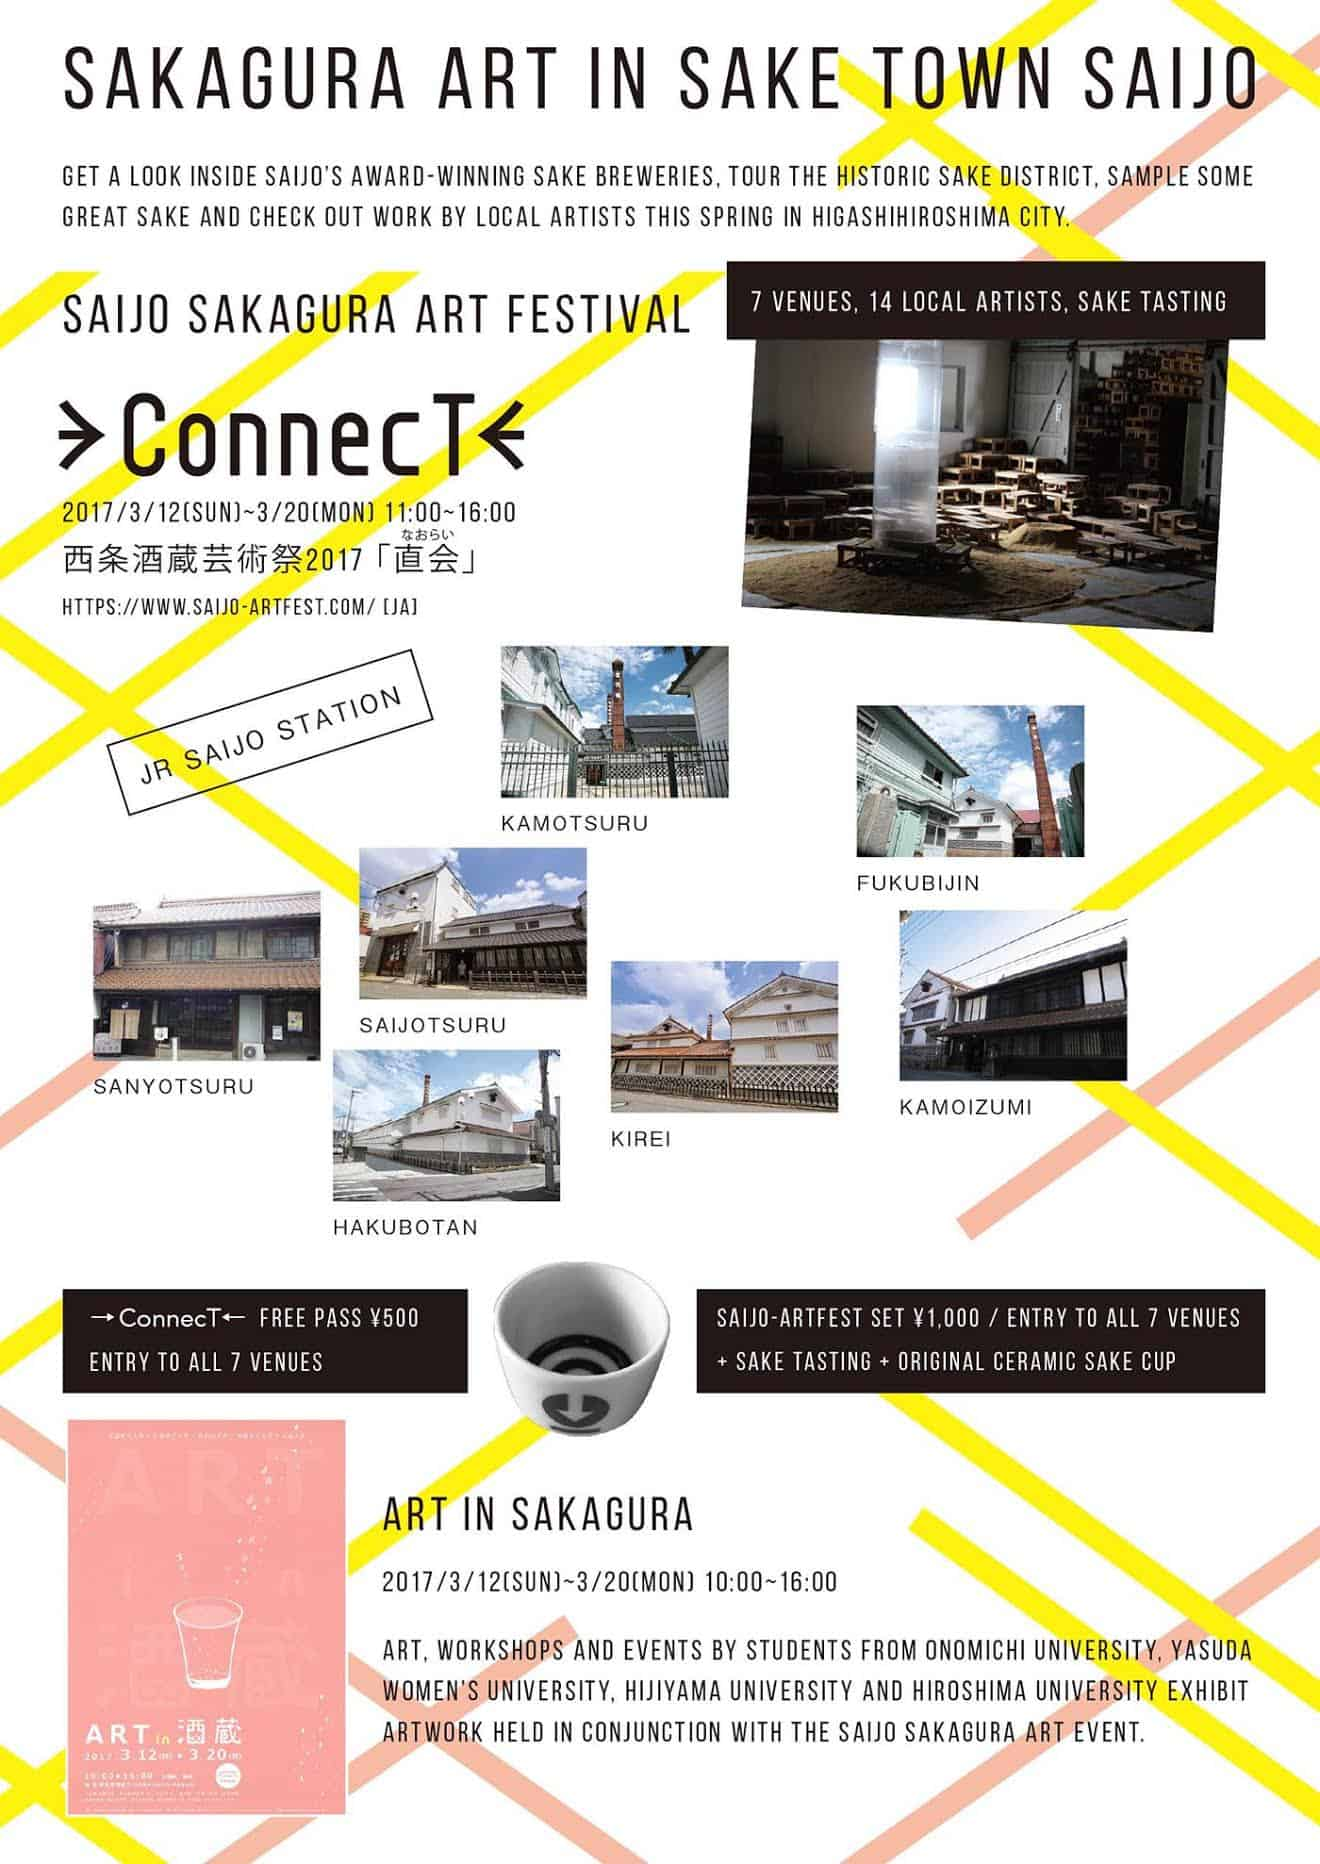 saijo sakagura art festival connect 2017